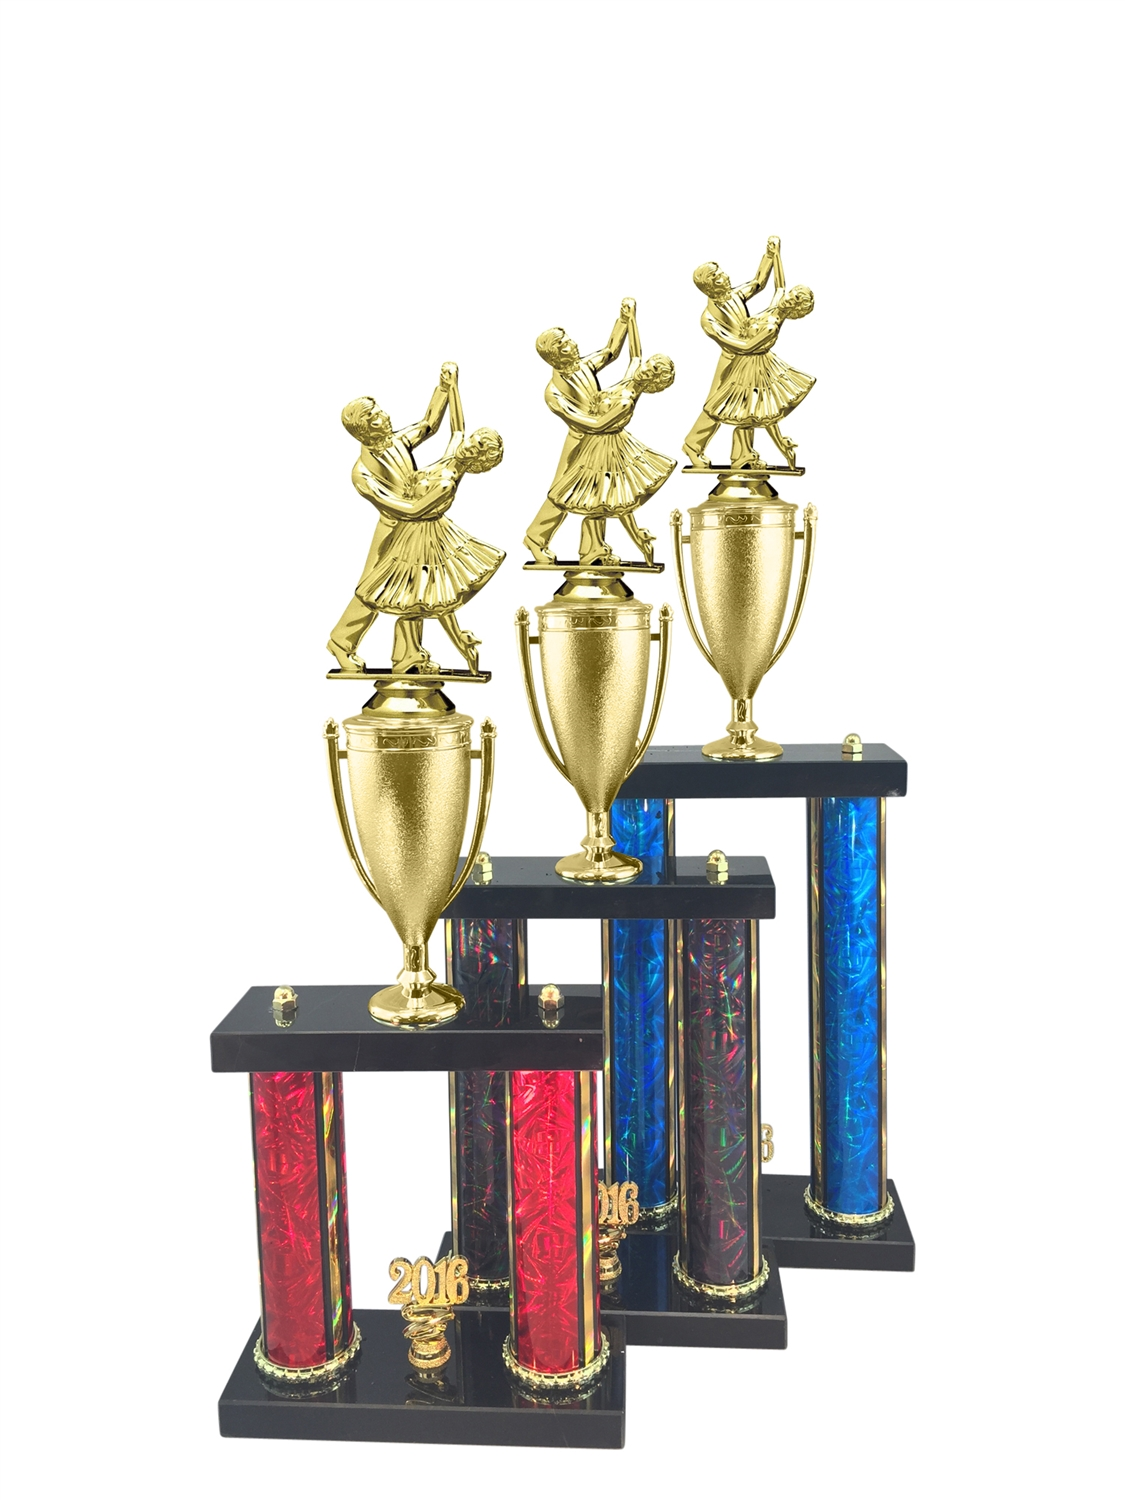 Dancing Couple Trophy Available in 11 Color & 3 Size Options